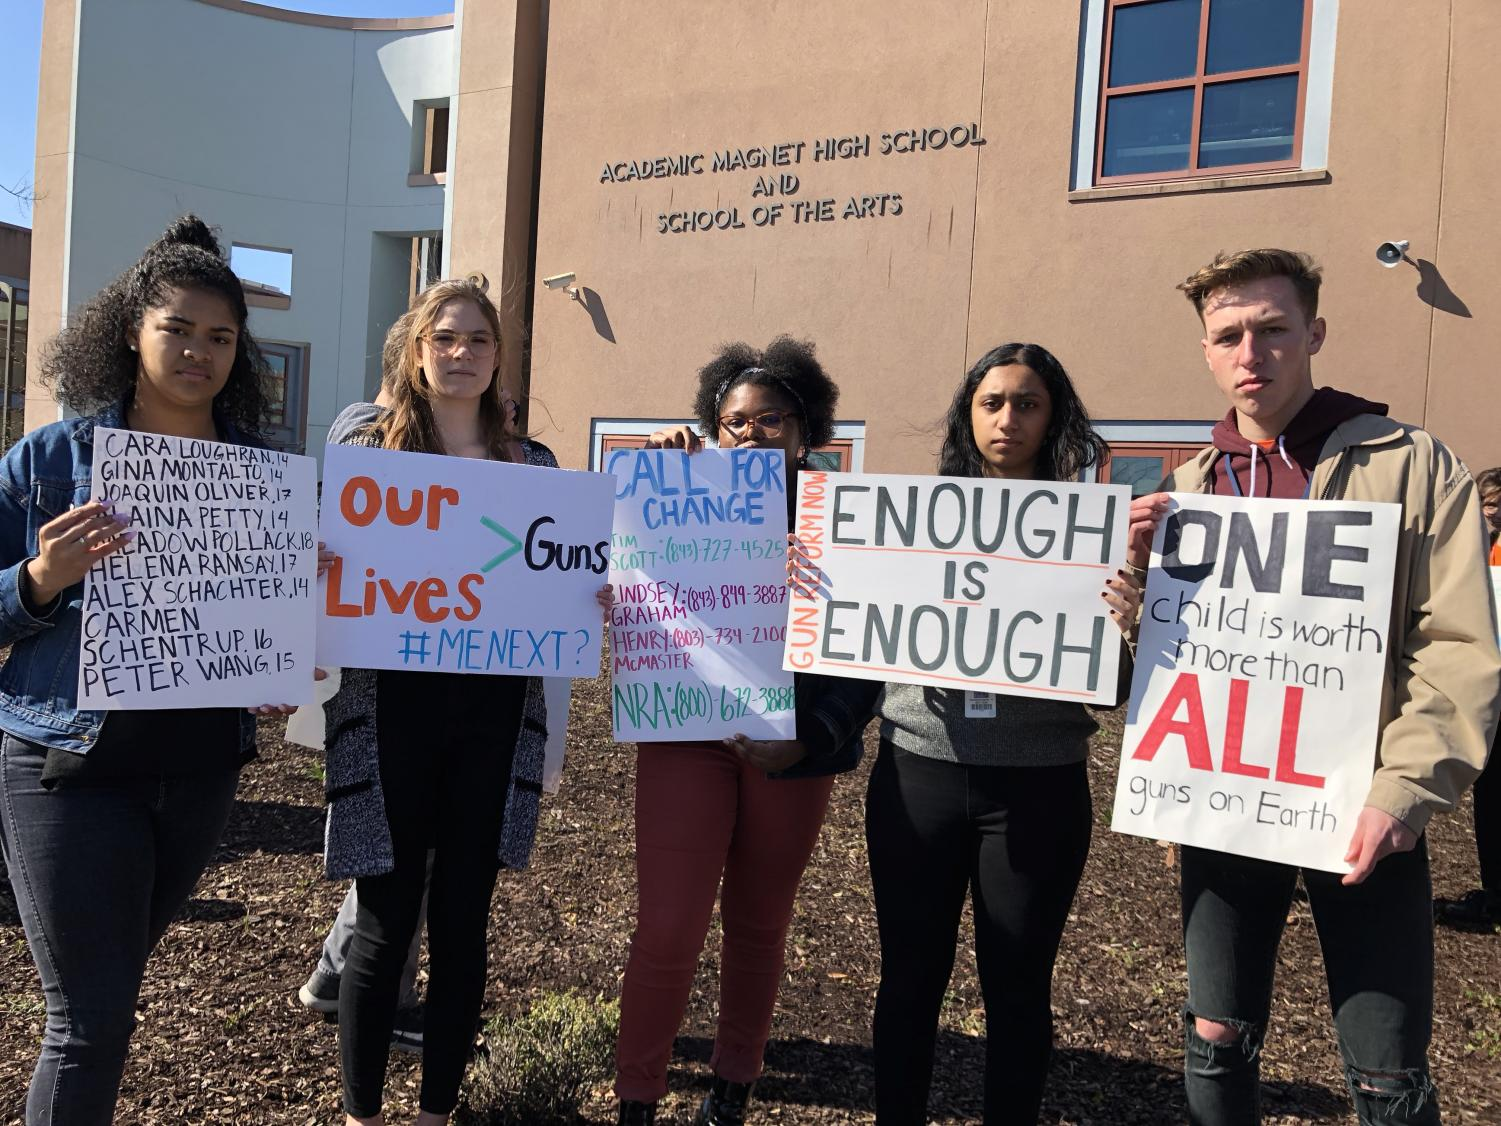 (from left to right) Semaj Fielding, Isabel Root, Kennedy Bennett, Samantha Devapiriam, and Keagan Larkins at the walkout on March 14th